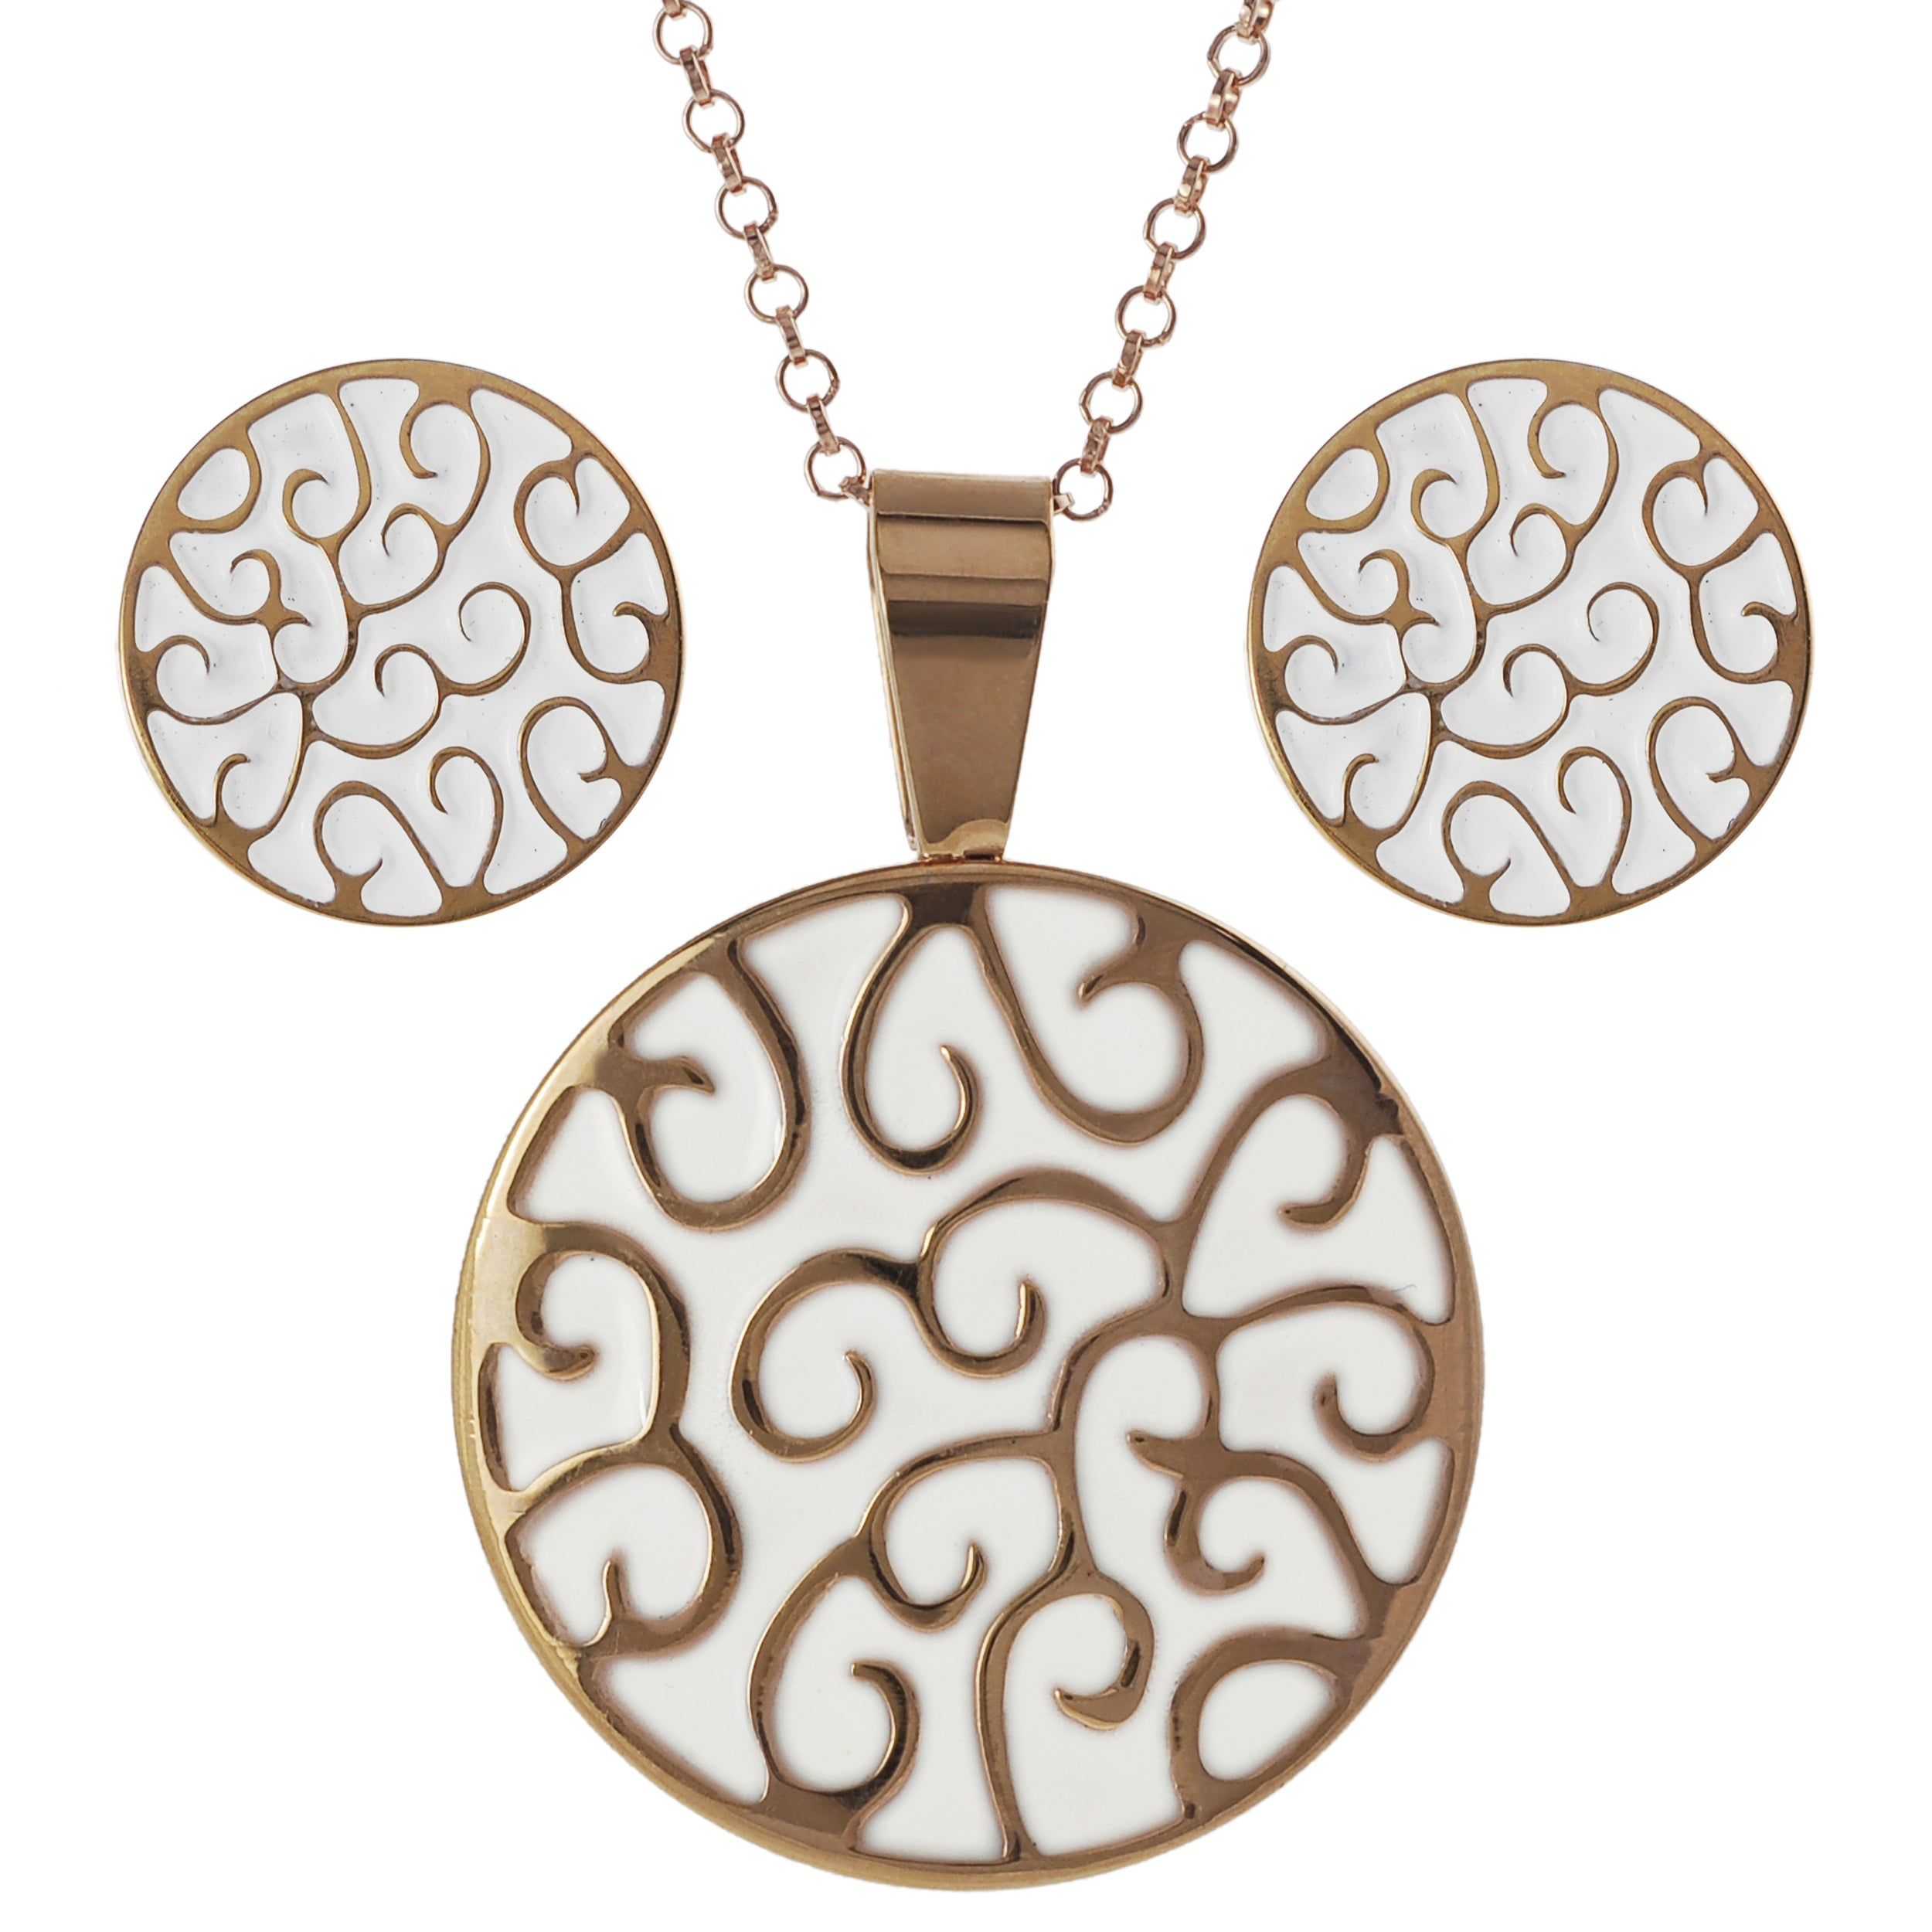 Journee Collection Coppertone Steel Enamel Necklace and Earring Set